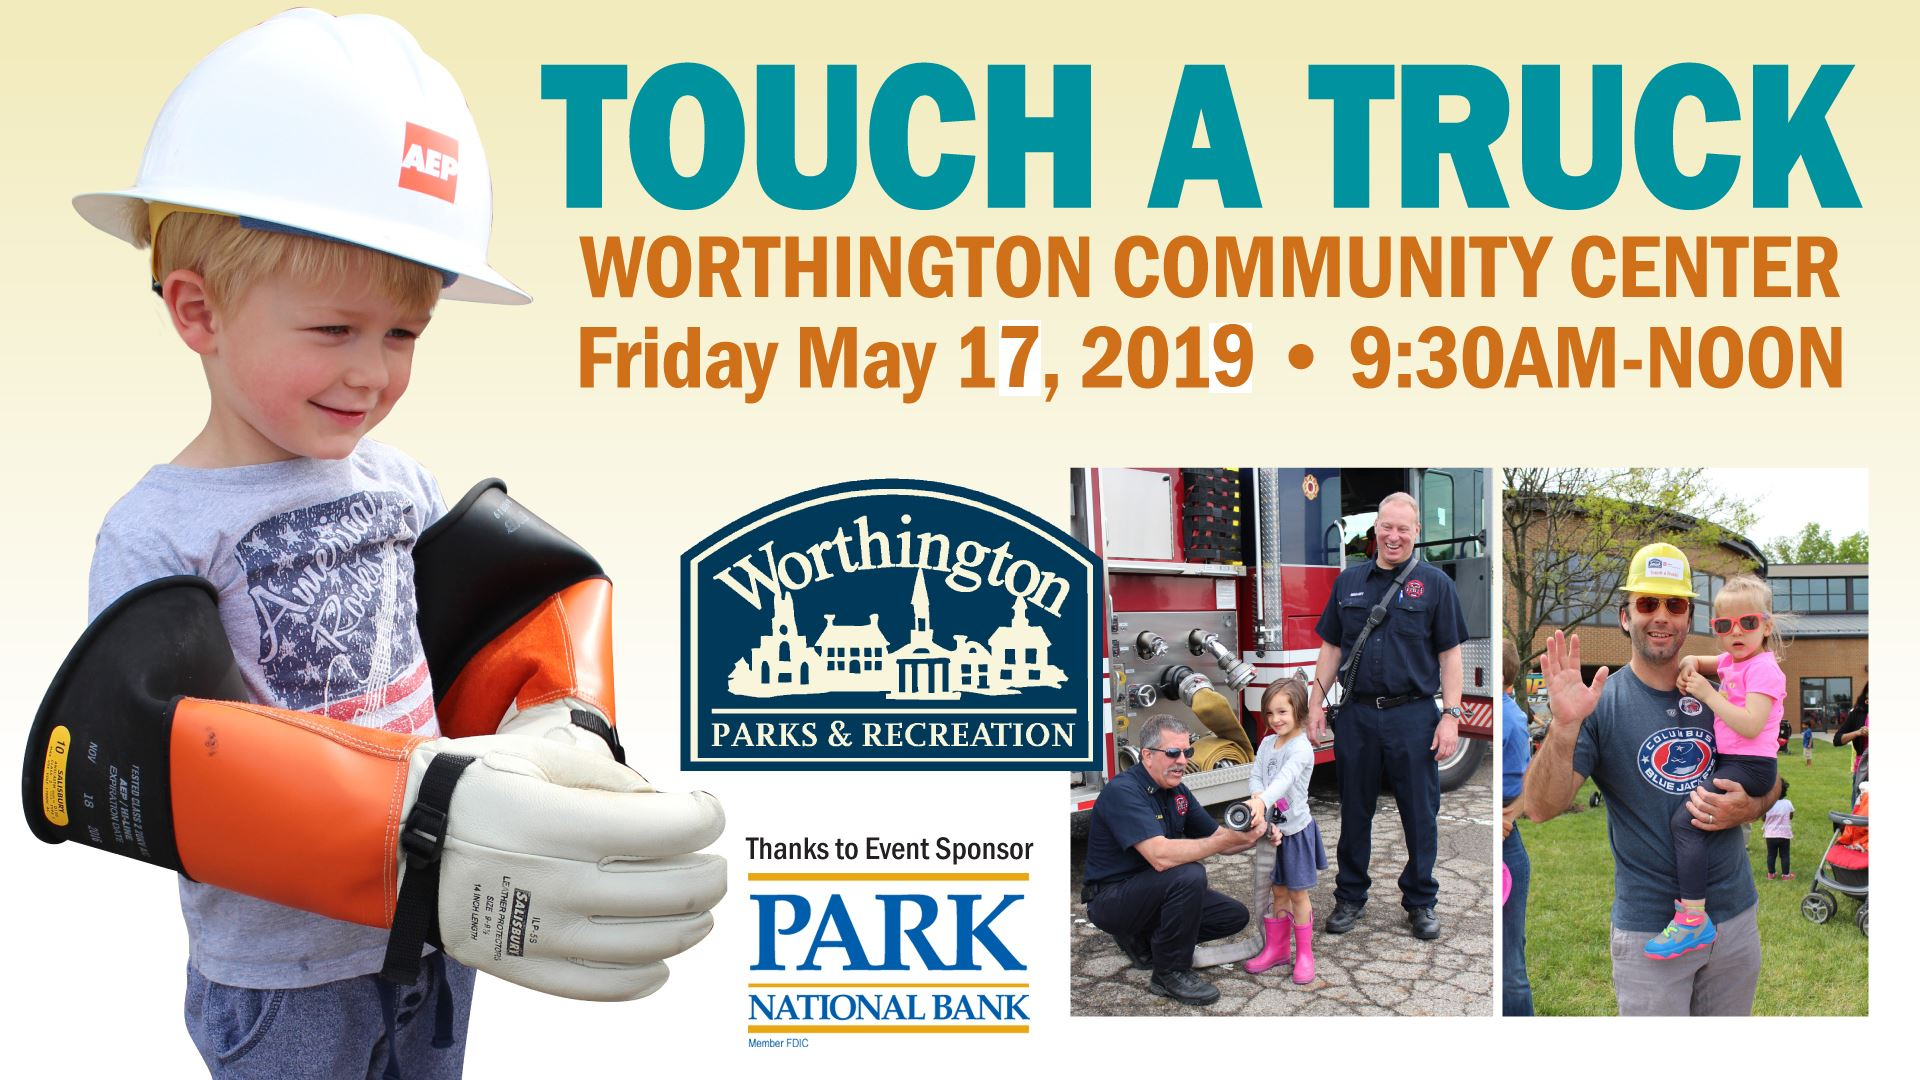 Touch a truck 2019 facebook event